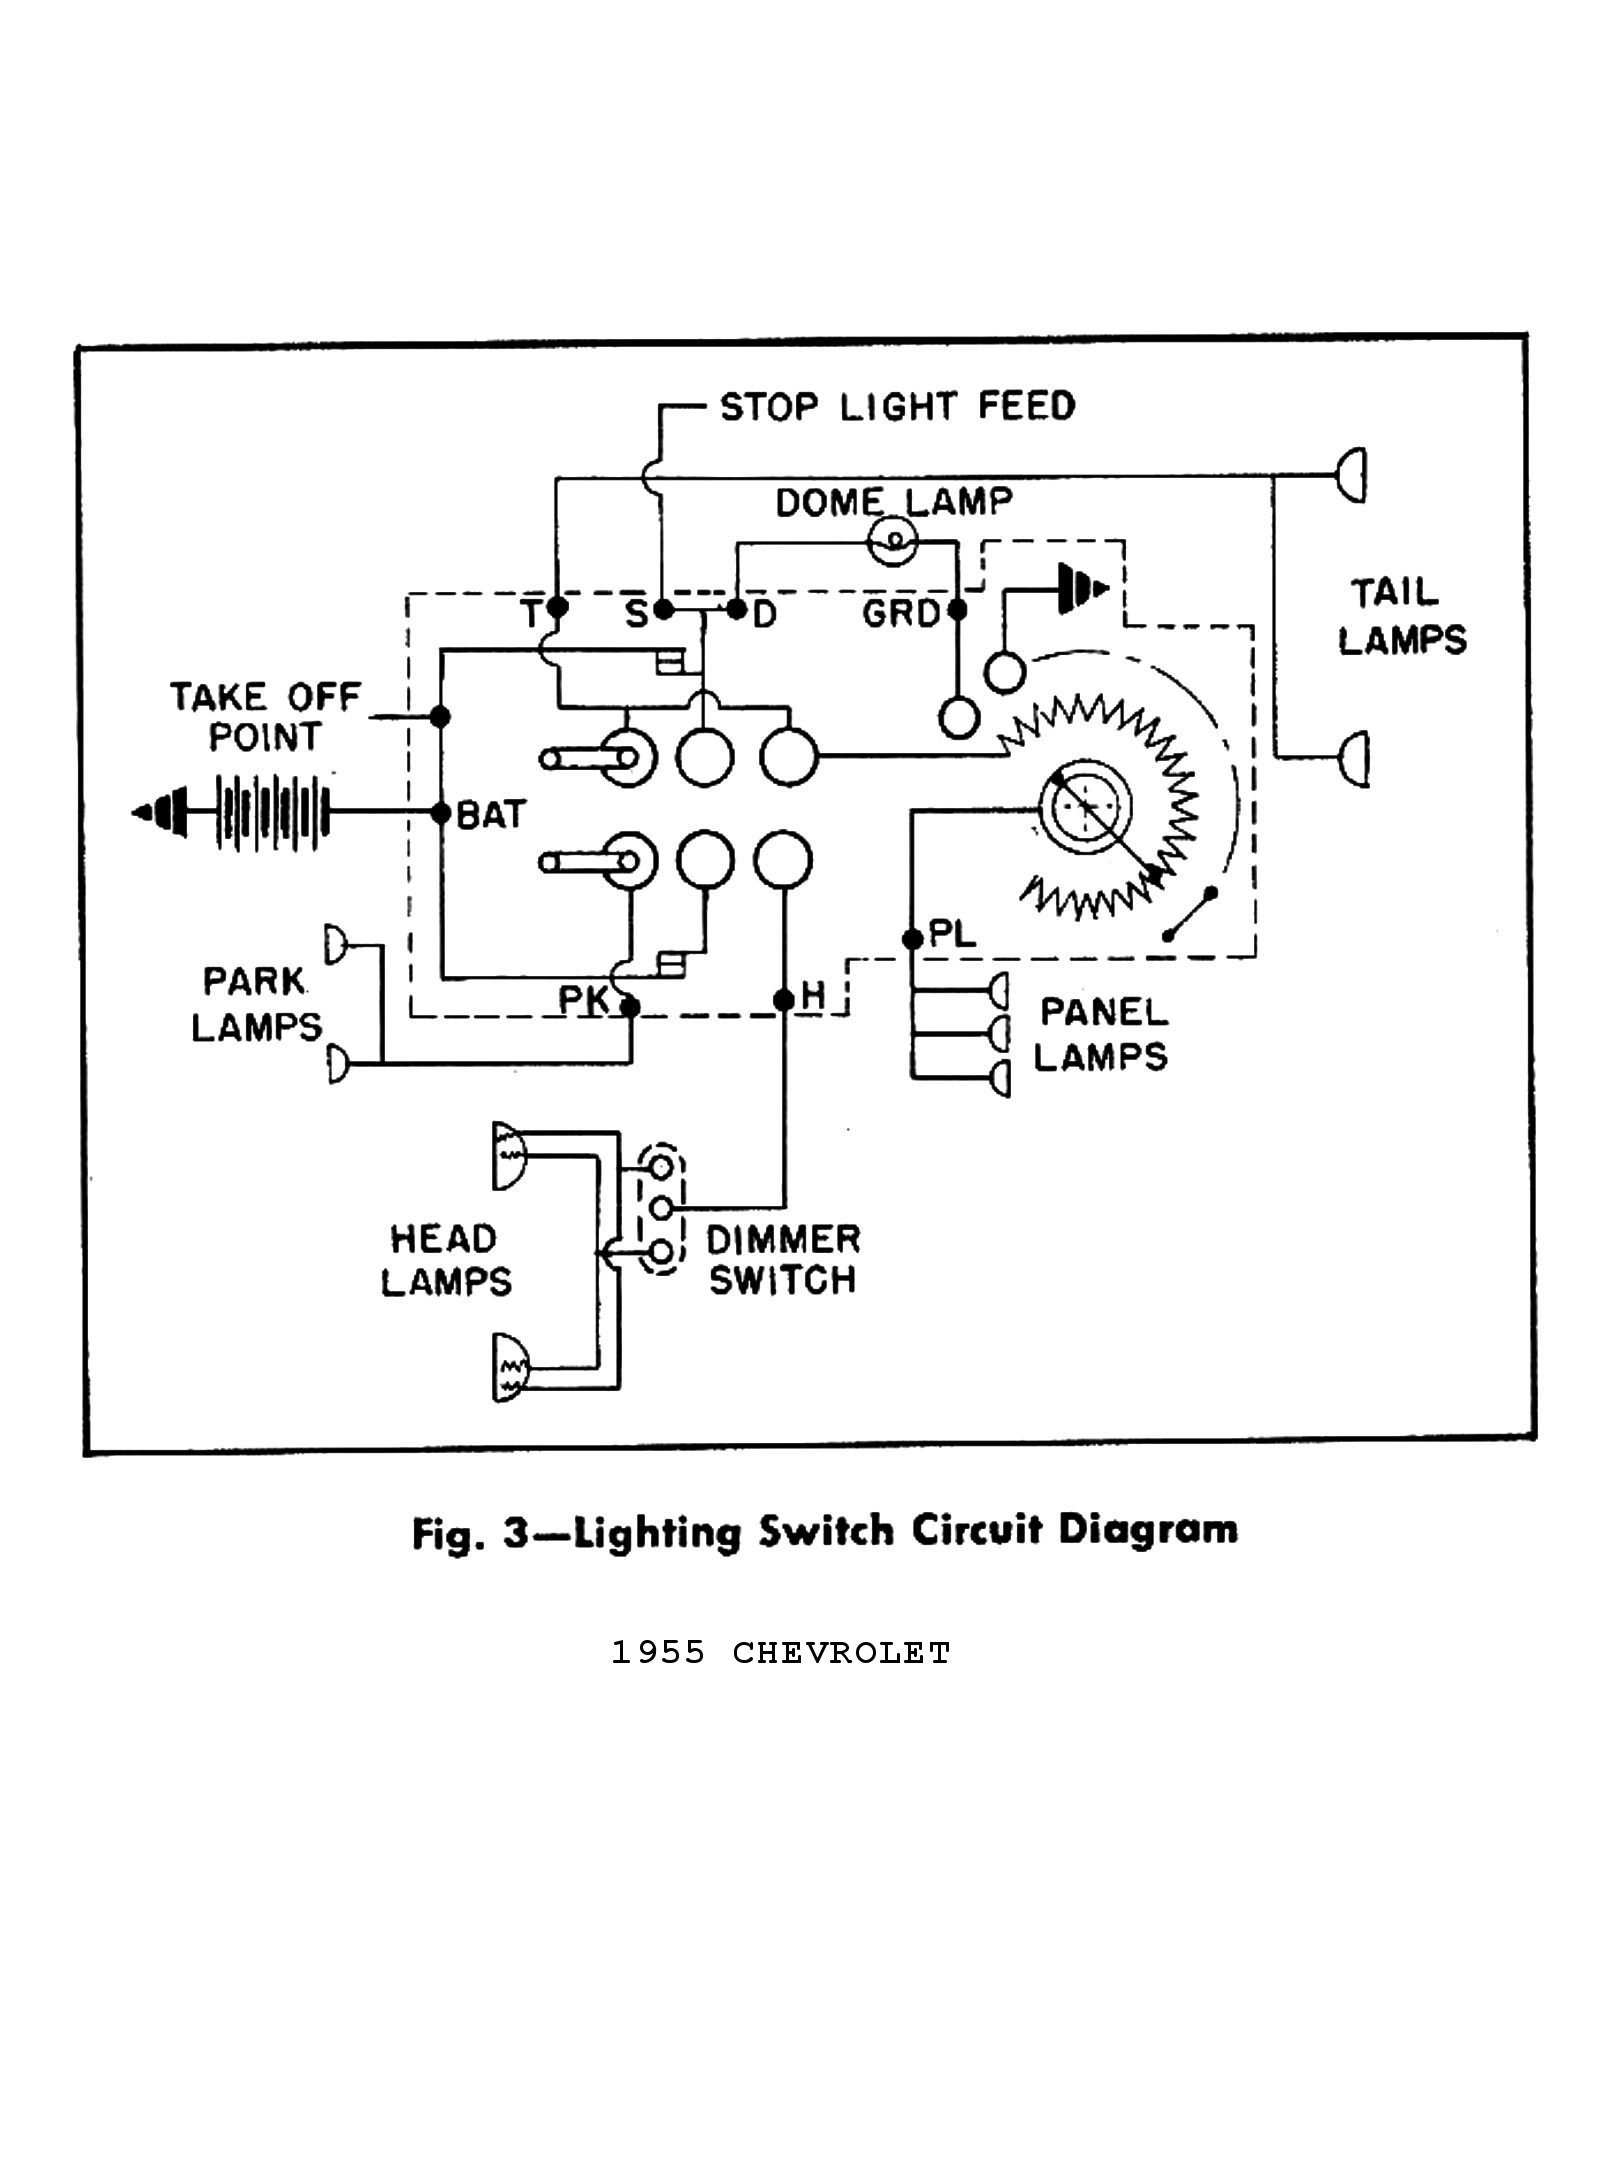 light switch wiring diagram on 59 the 1947 present chevrolet gmc truck  message board network Buick Rendezvous Wiring-Diagram 2003 Buick Regal  Wiring-Diagram